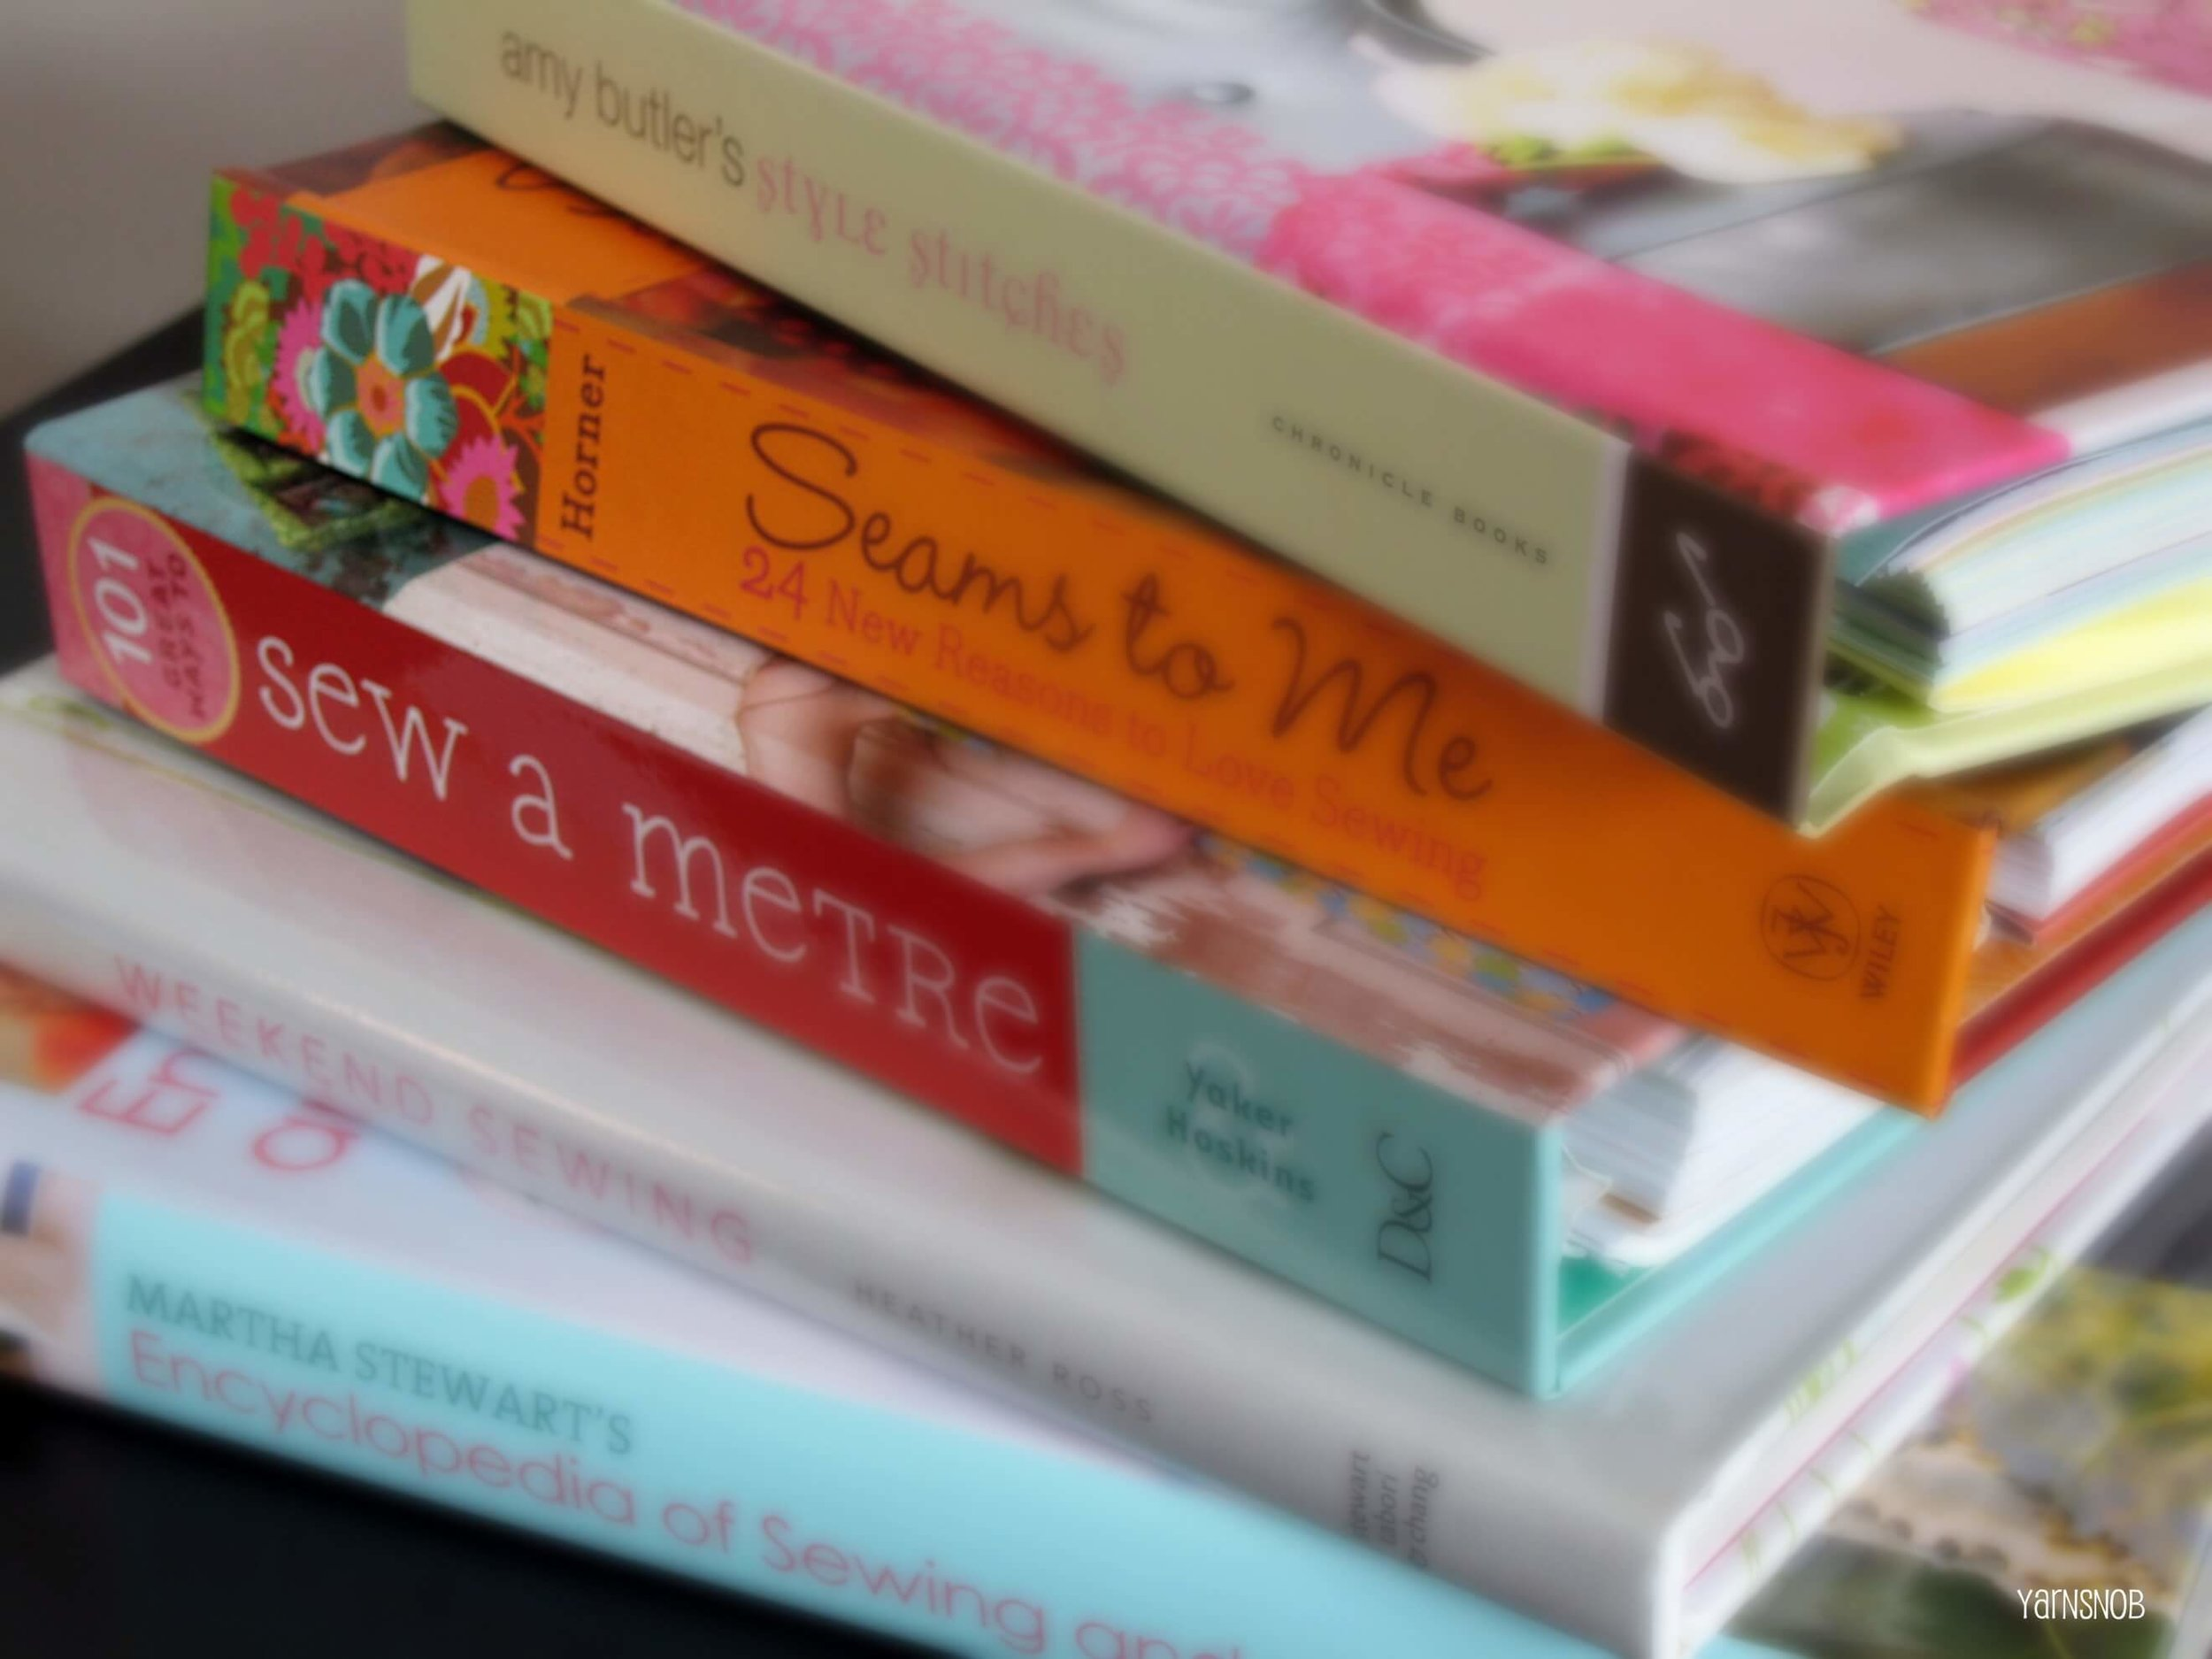 Sewing Books - It's always good to have some sewing books to look back on when learning to sew. I found a few sites but rather have books. That way I can mark notes in them if needed and easy to reference instead of having to search the web all over again.